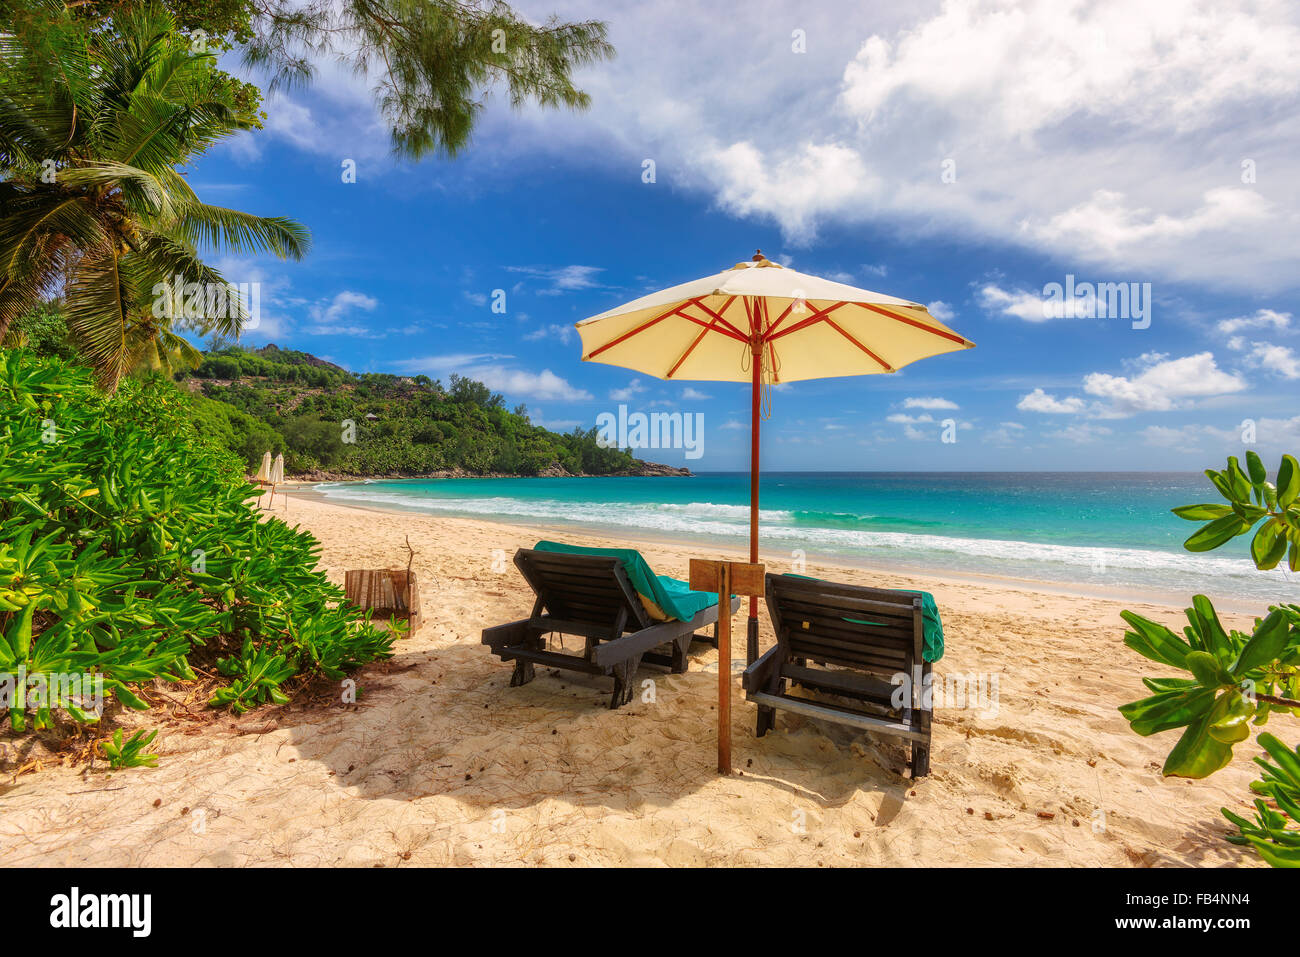 View of nice tropical empty sandy beach with umbrella and beach chair, Mahe Island, Seychelles - Stock Image